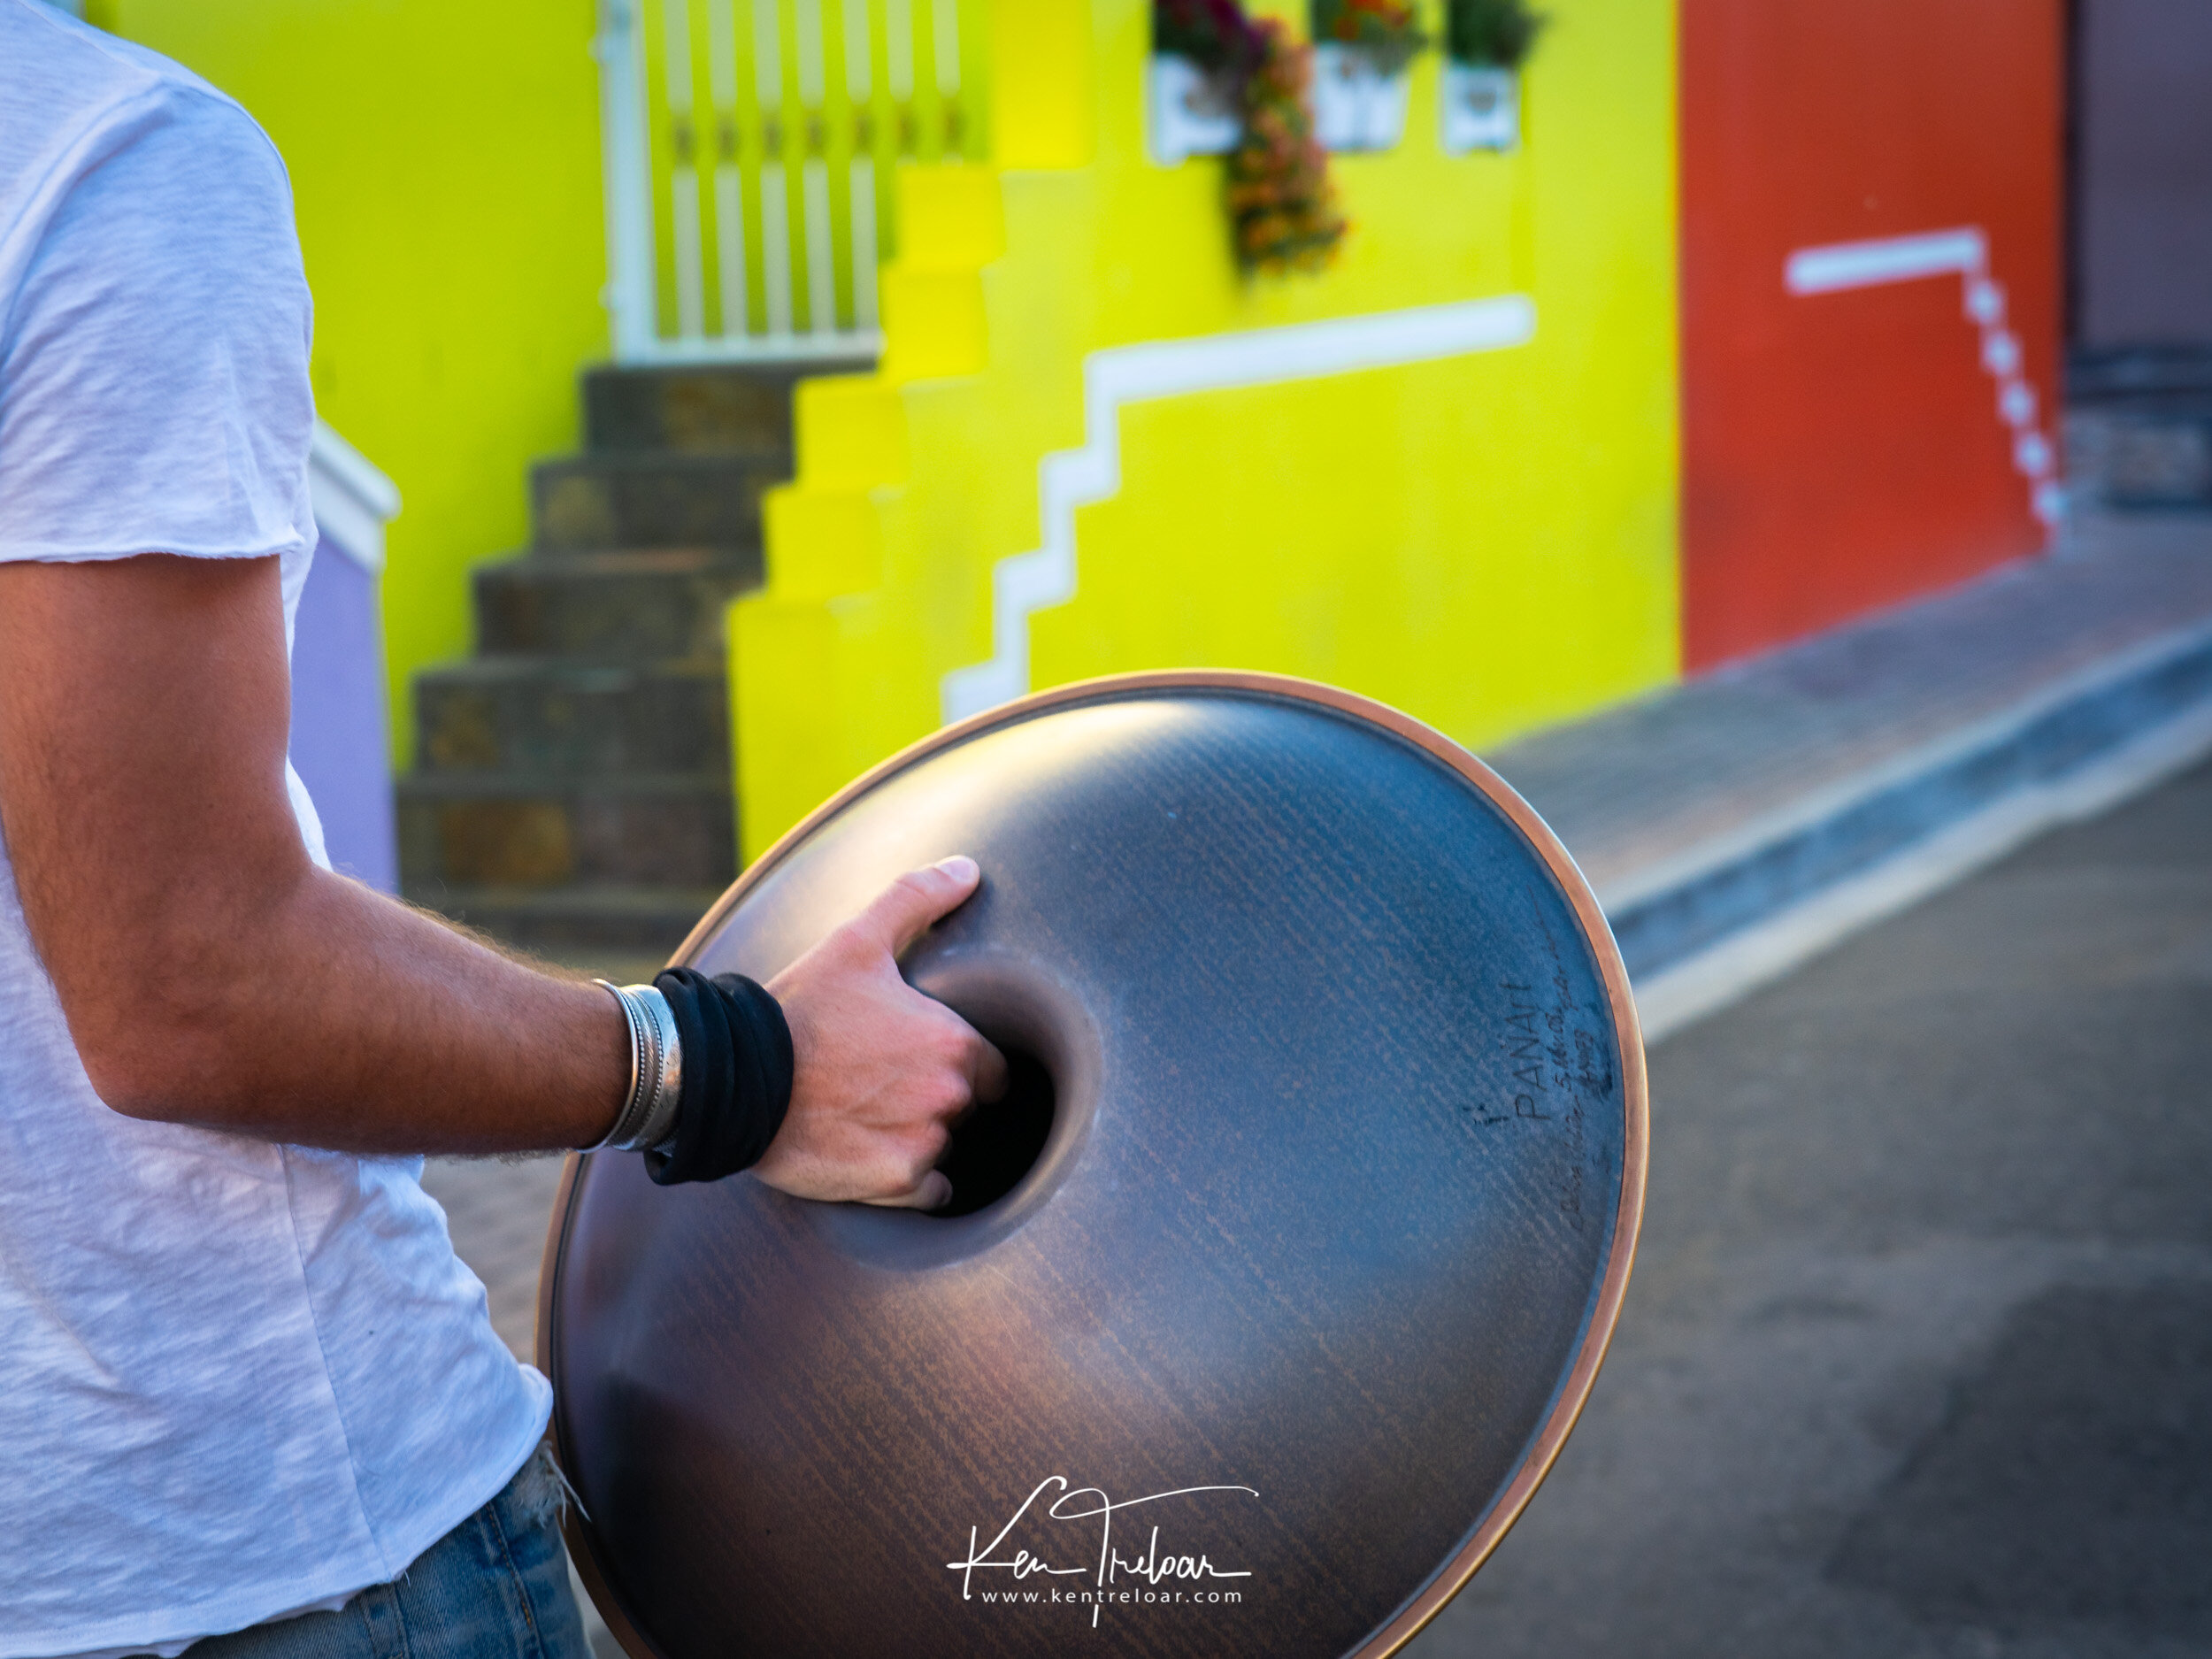 Marco Selvaggio Hang Musical Instrument - Bo-Kaap, Cape Town South Africa - Image by Ken Treloar Photography 2019-8.jpg